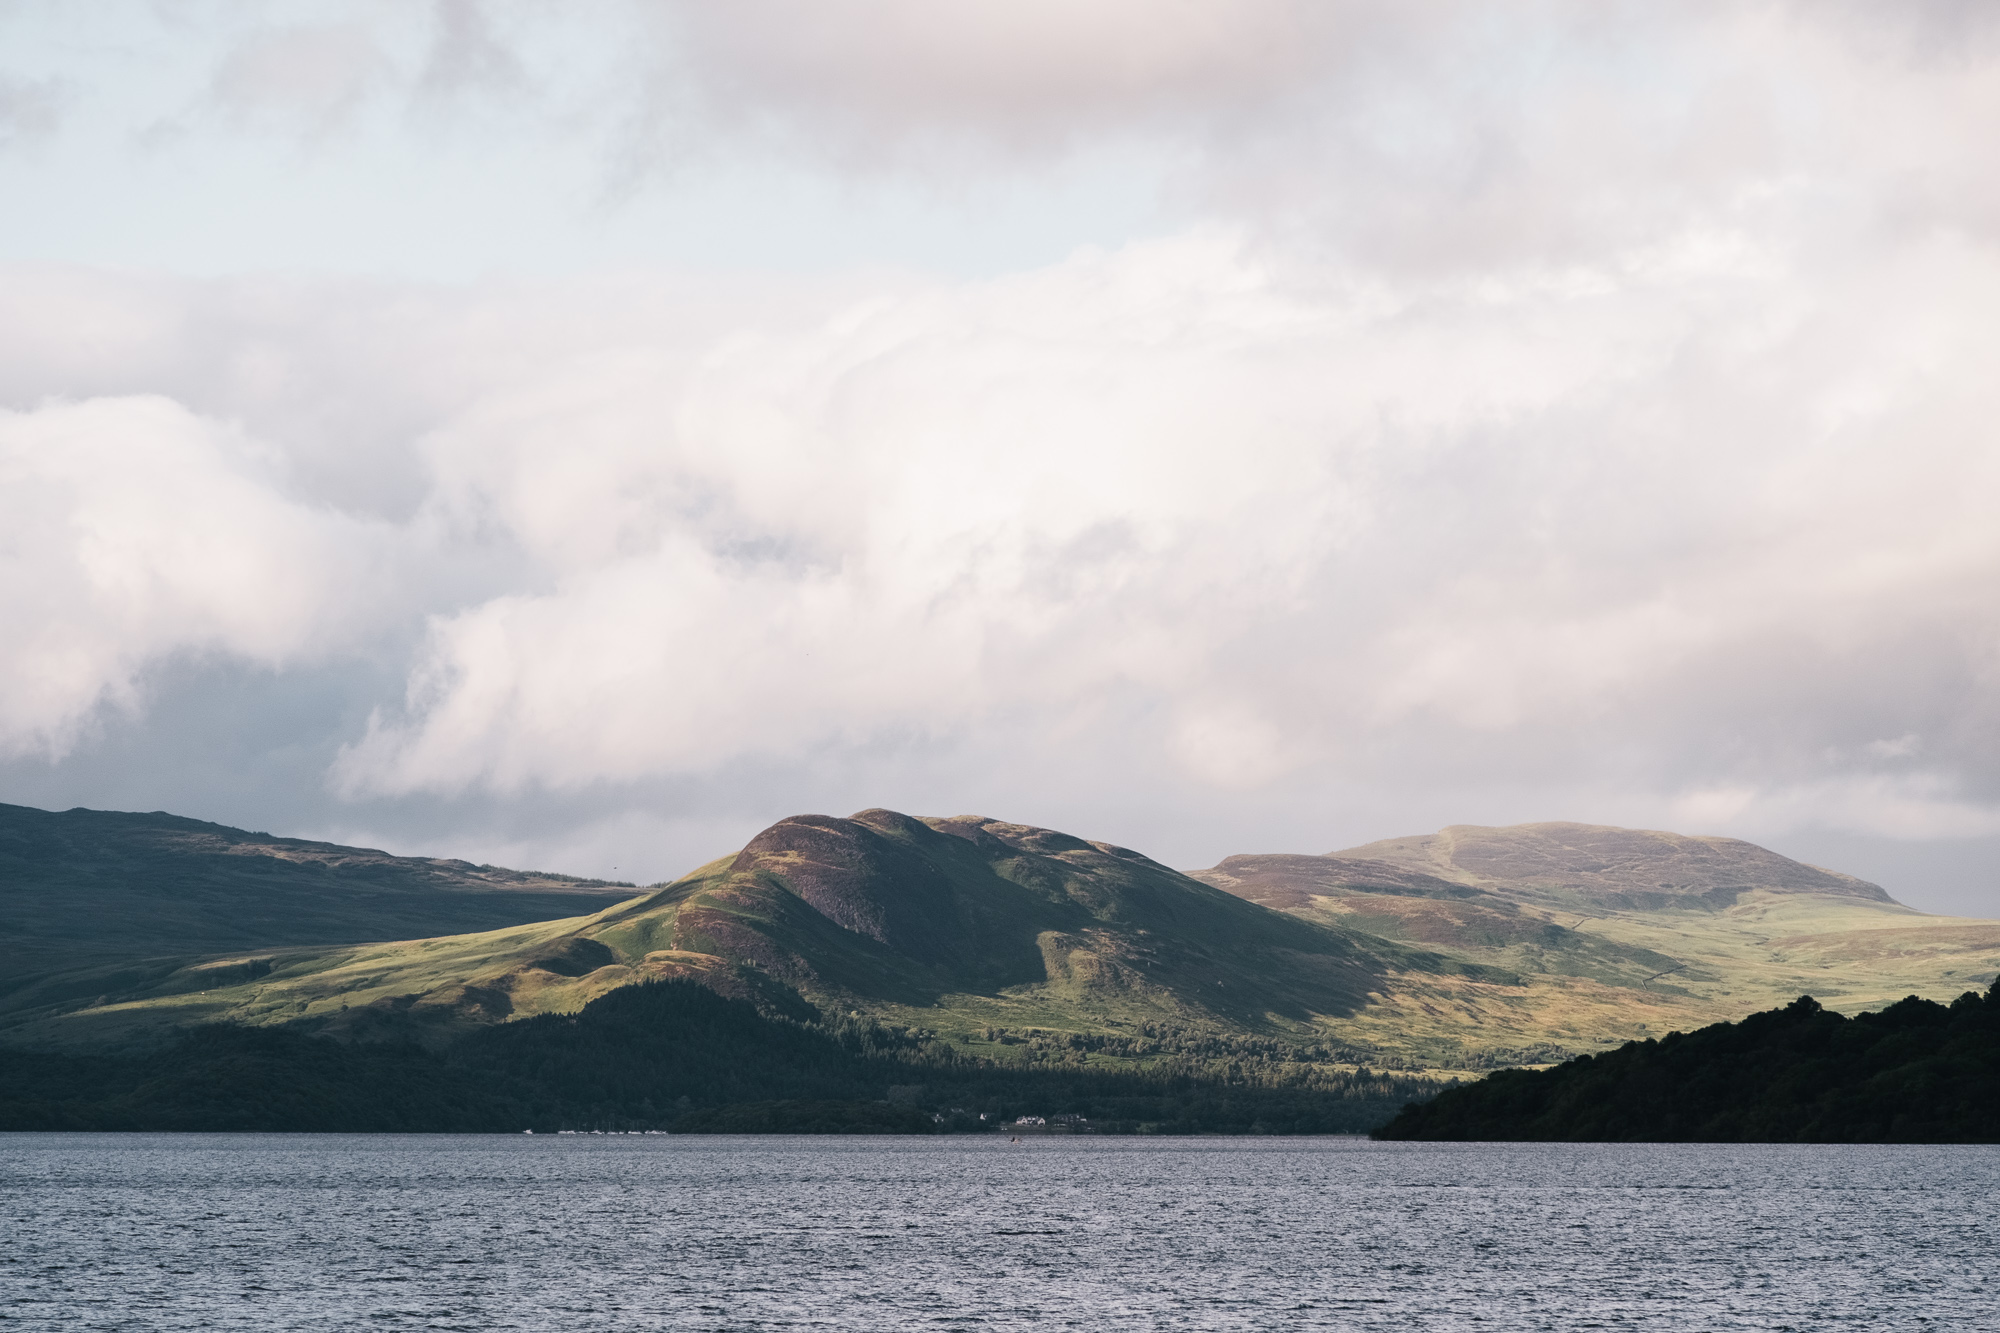 The Conic Hill